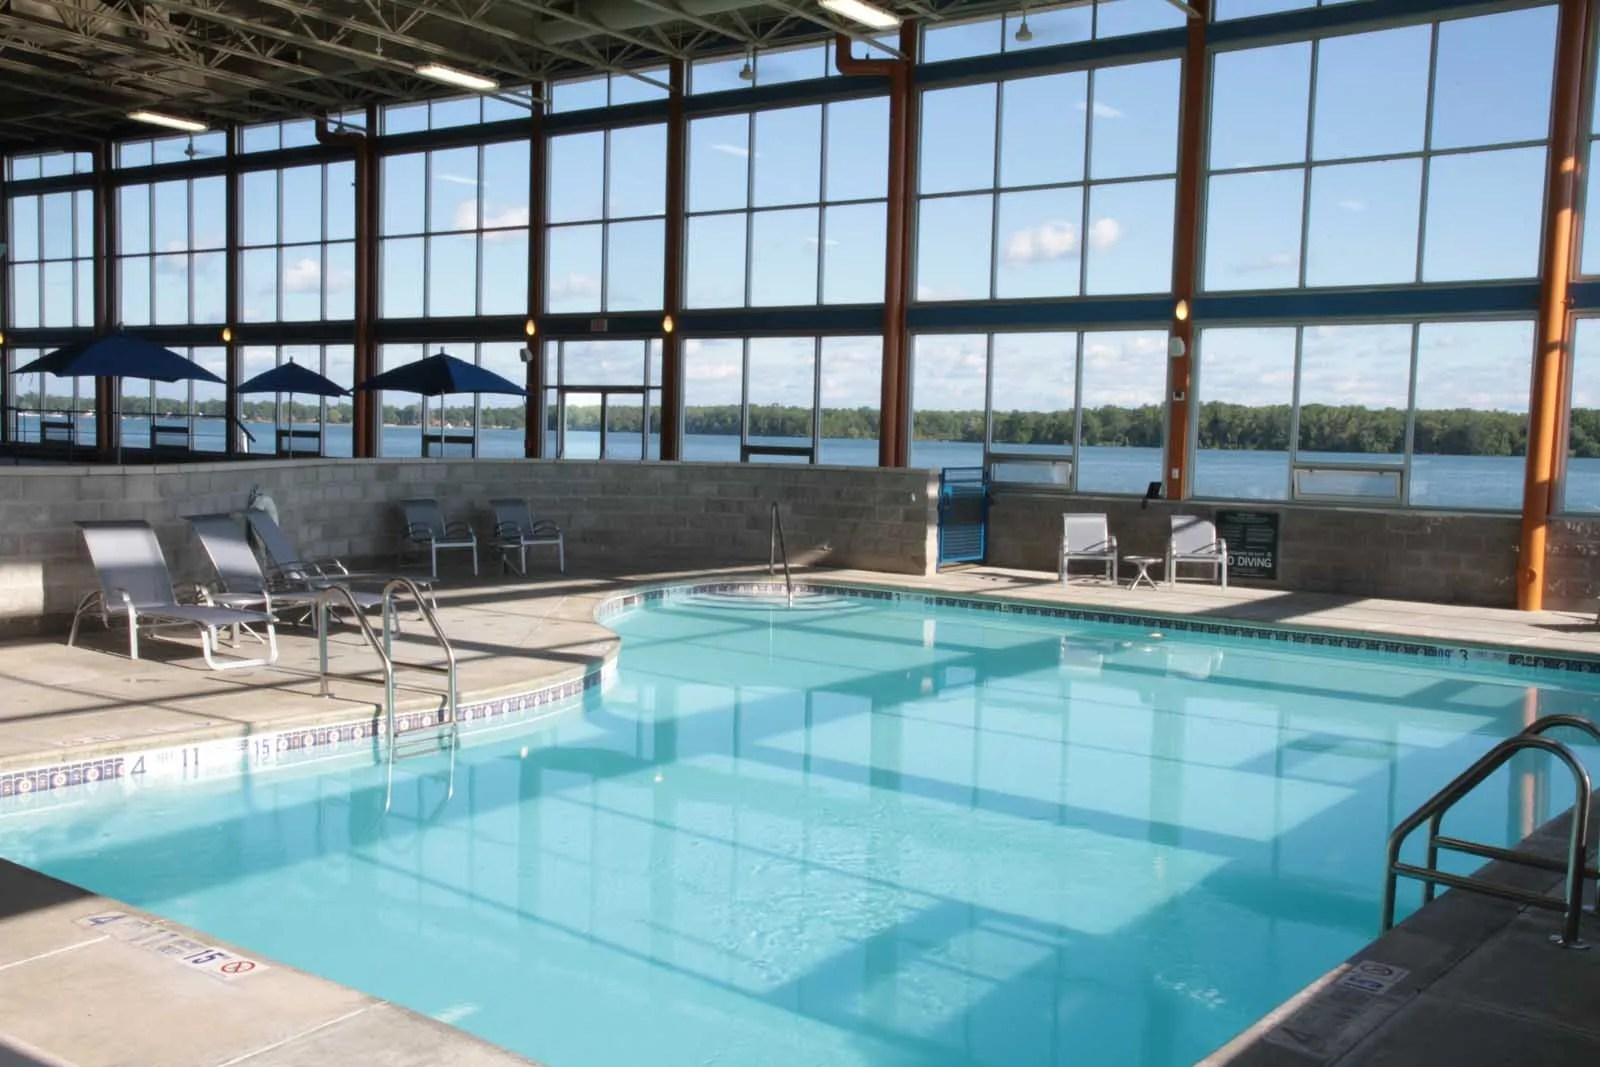 Niagara Riverside Resort - Pool